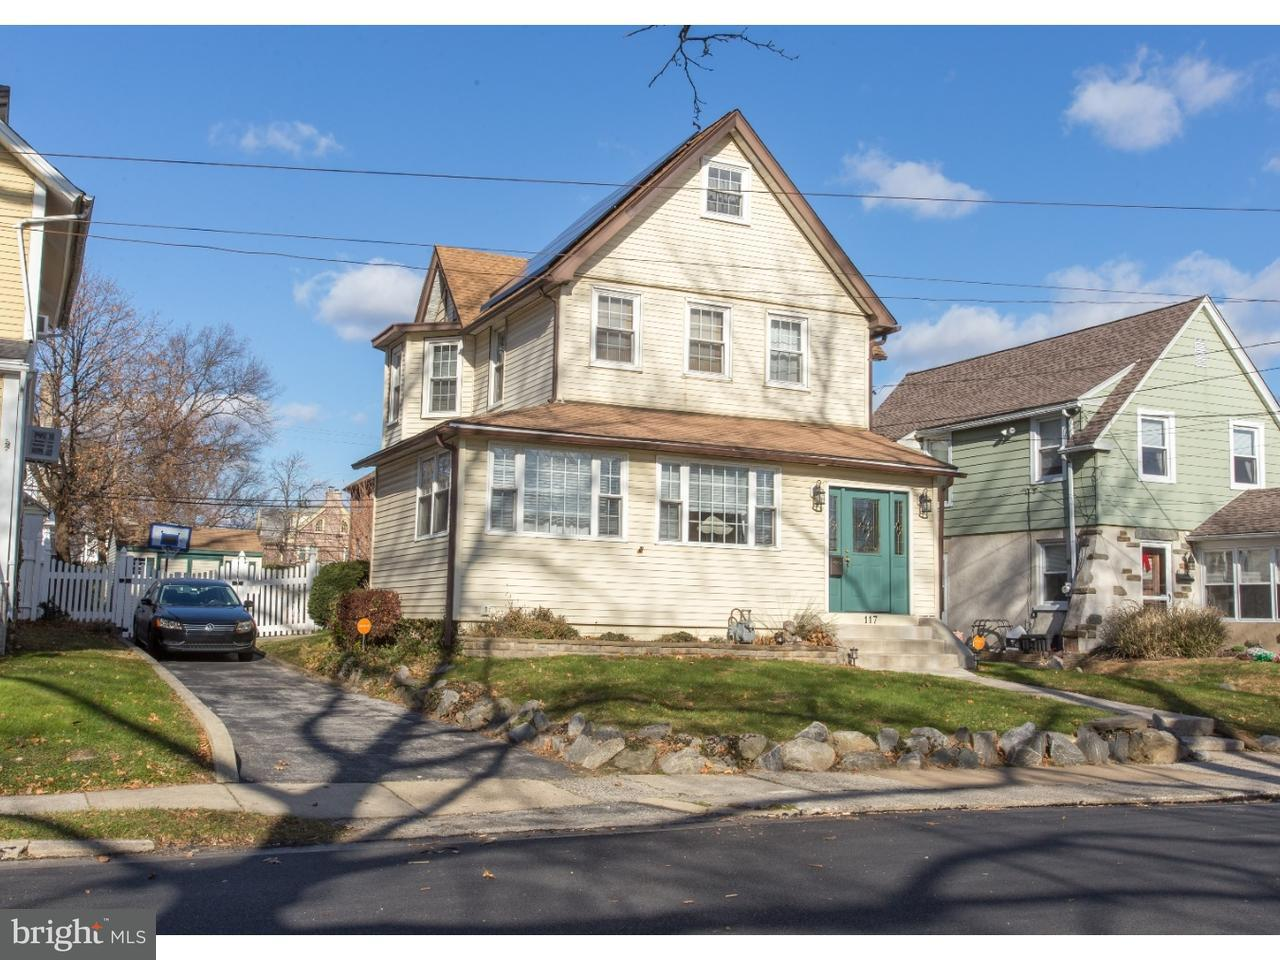 Single Family Home for Sale at 117 DELAWARE Avenue Ridley Park, Pennsylvania 19078 United States